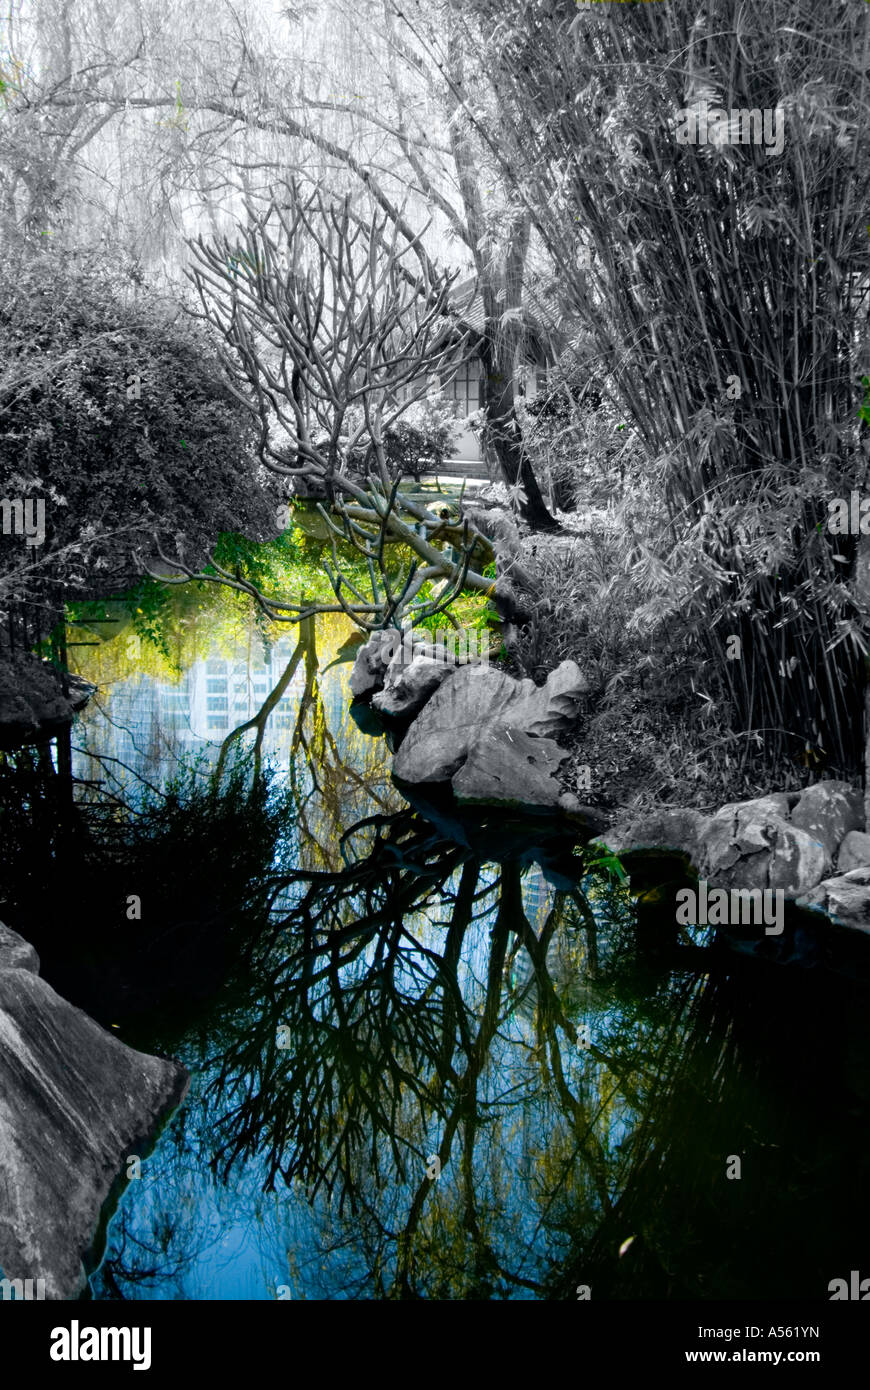 digitized version of wooded stream inside the Chihnese Friednship Garden near Darling Harbor in Sydney Australia - Stock Image